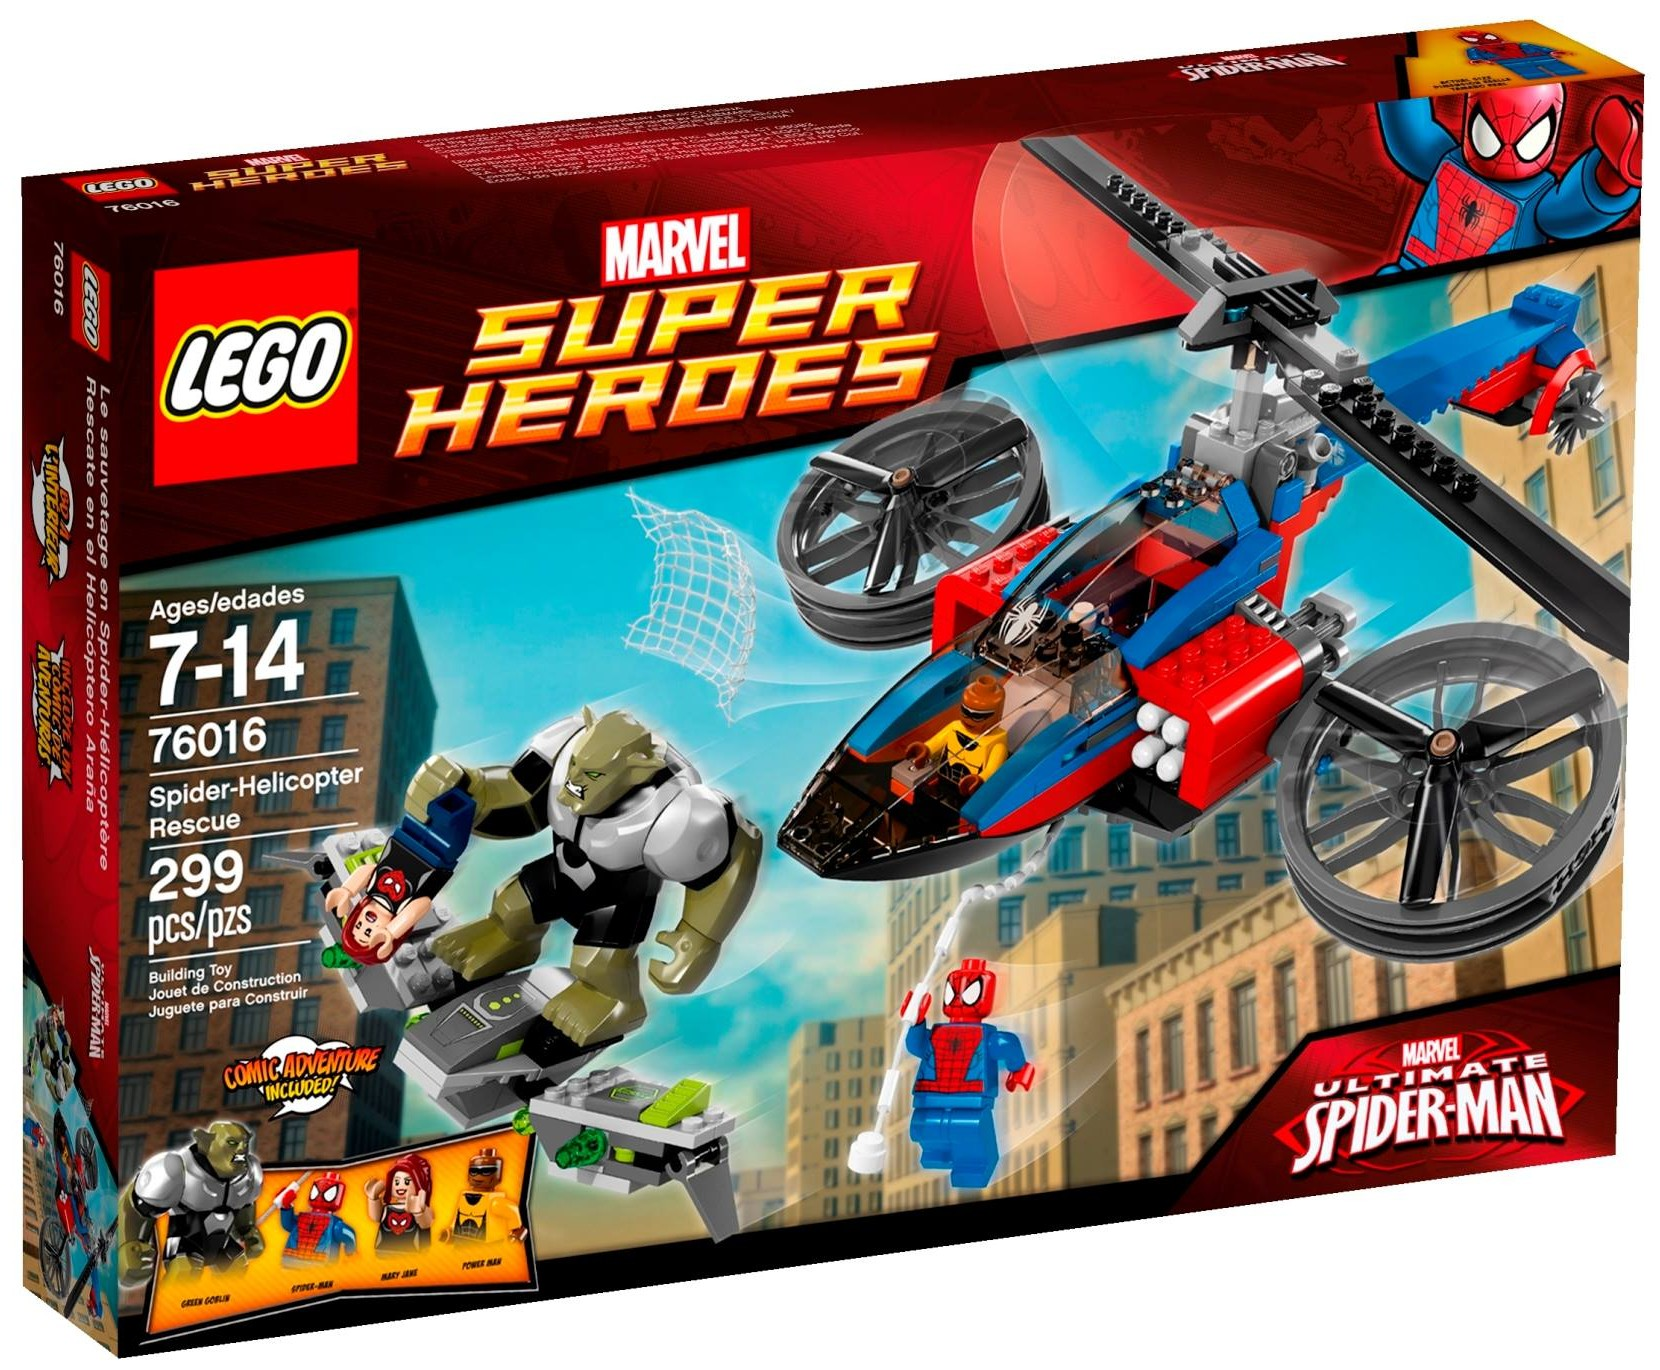 lego marvel 2014 spiderhelicopter rescue 76016 photos